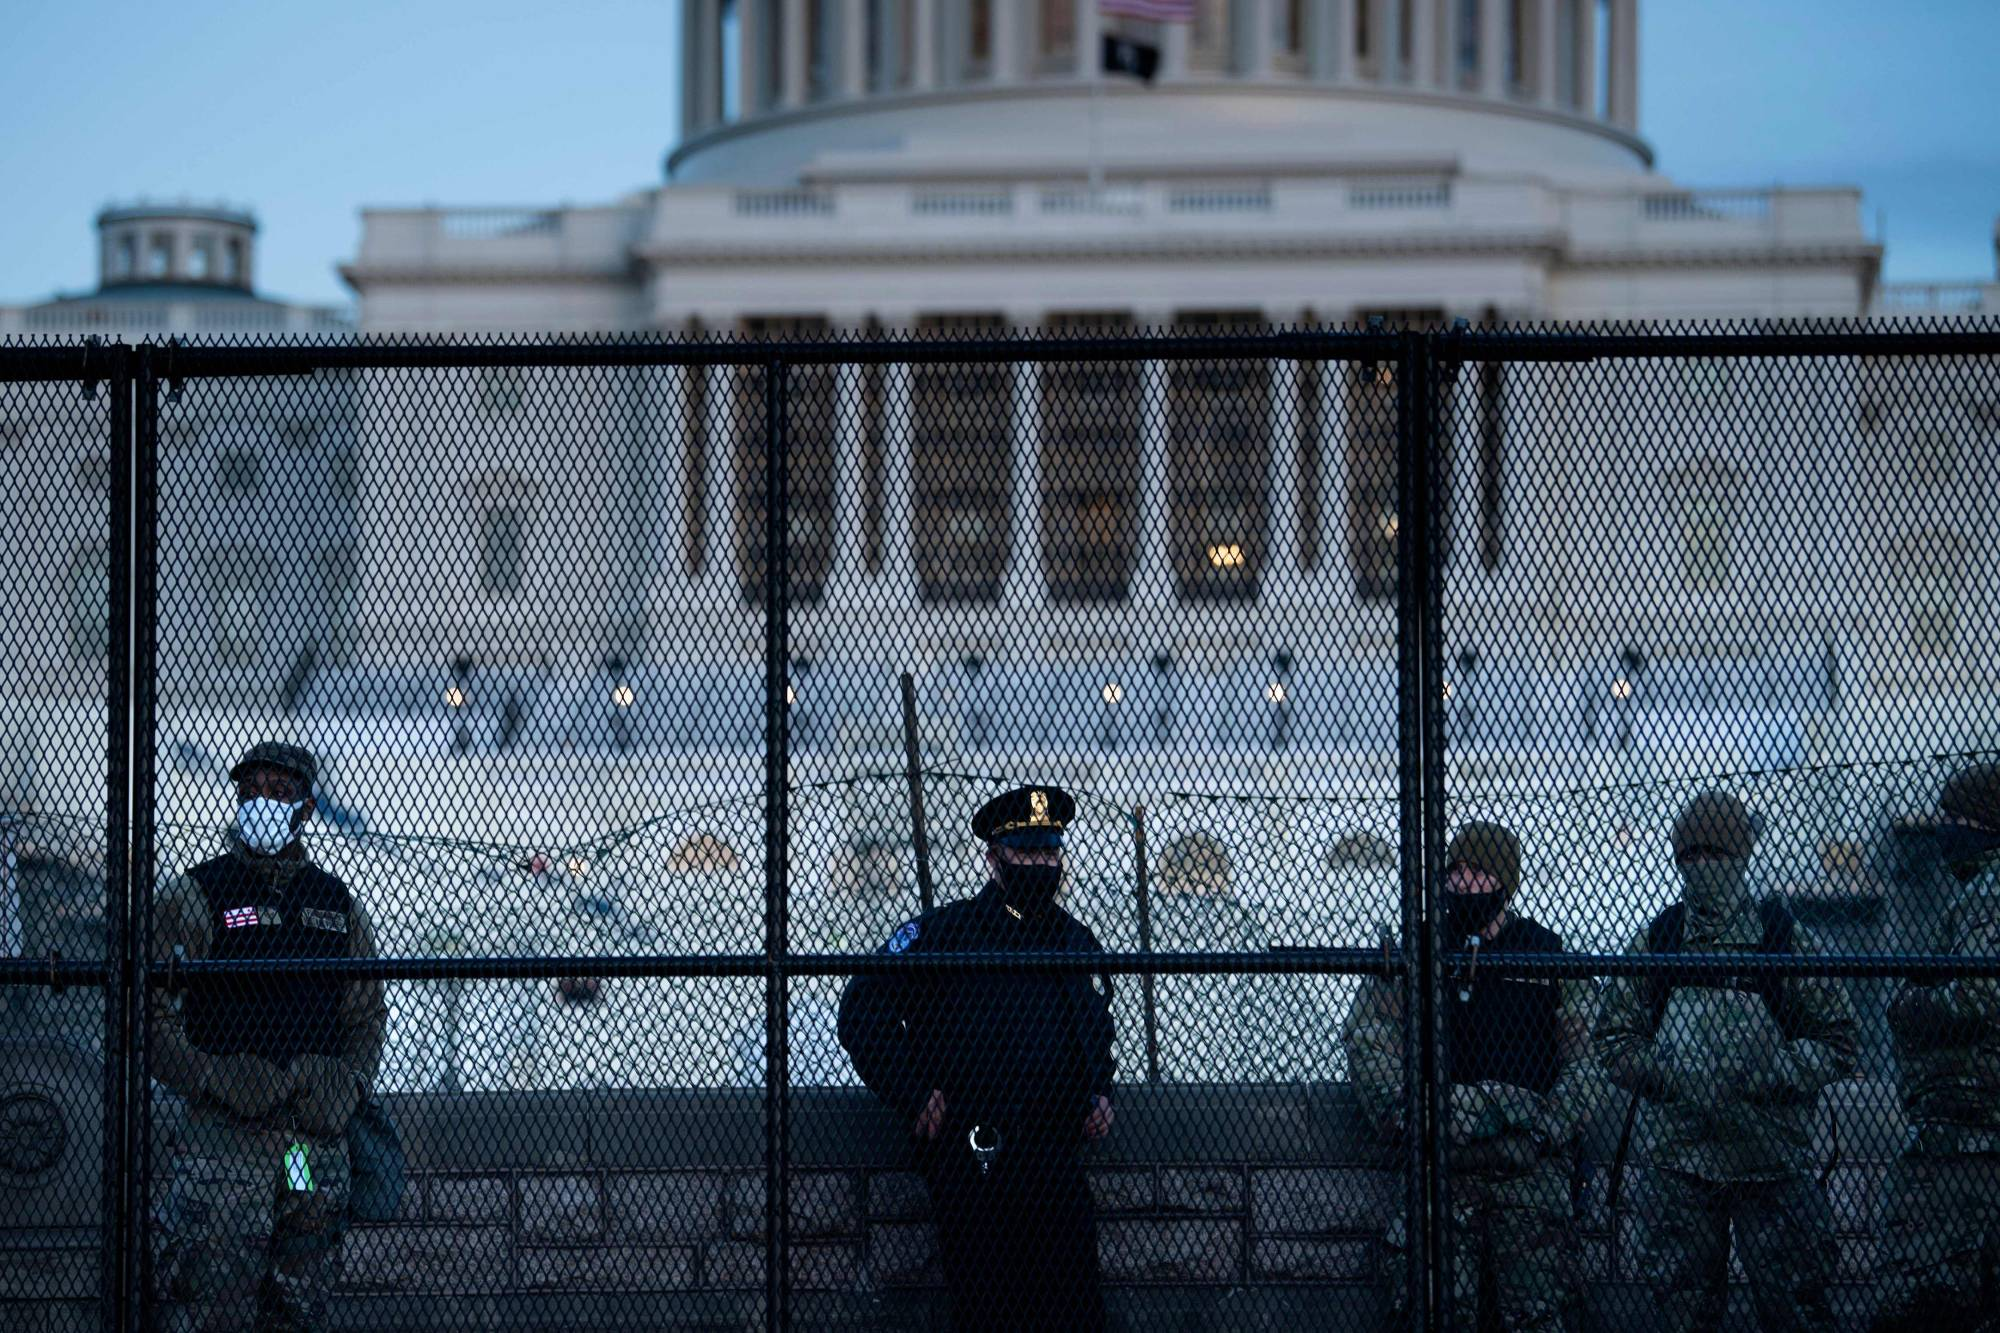 A Capitol Police officer stands with members of the National Guard behind a crowd control fence surrounding Capitol Hill in Washington on Thursday, a day after a pro-Donald Trump mob broke into the U.S. Capitol. | AFP-JIJI